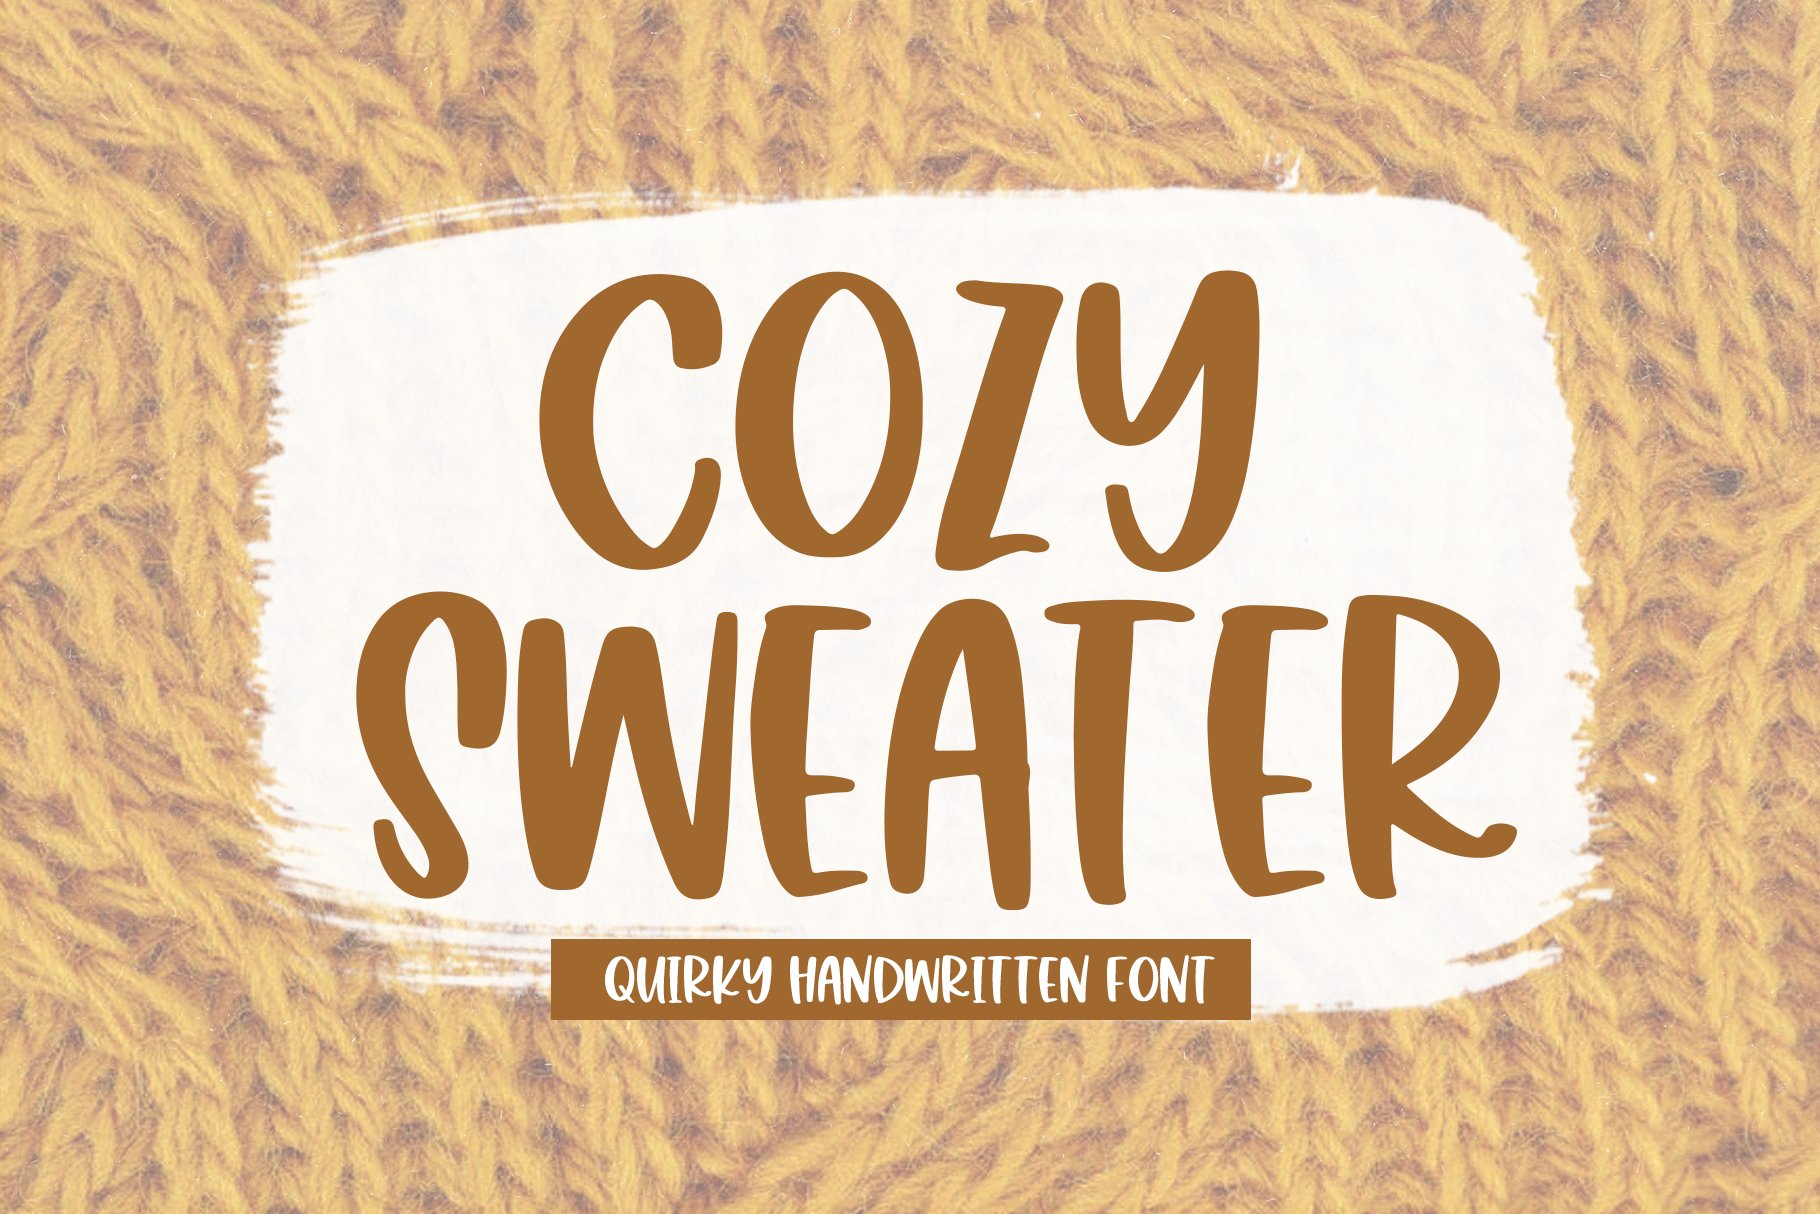 Cozy Sweater - A Quirky Handwritten Font example image 1